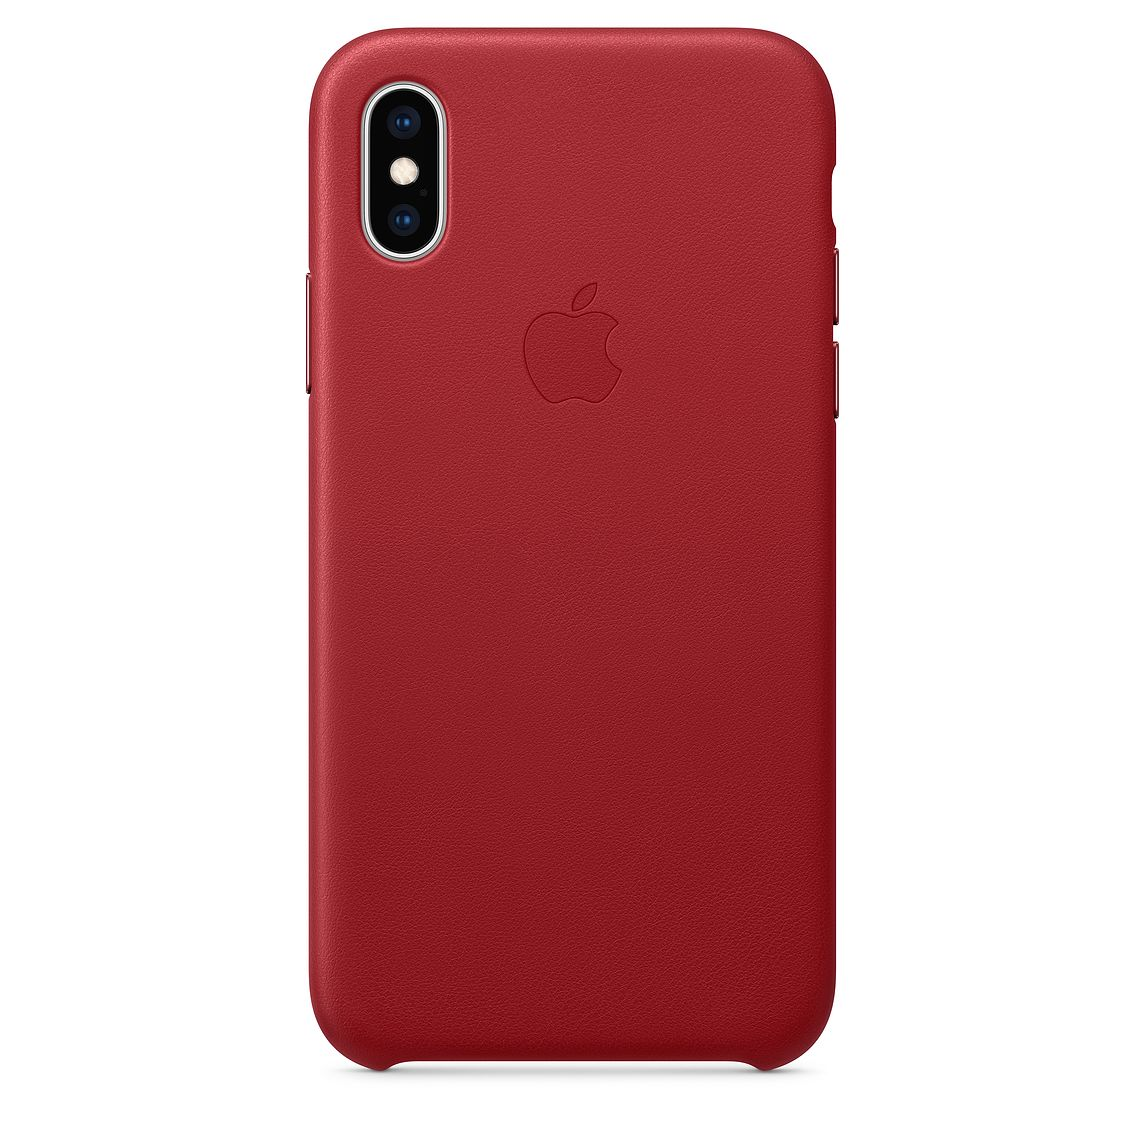 iPhone XS Leather Case Red MRWK2FE/A